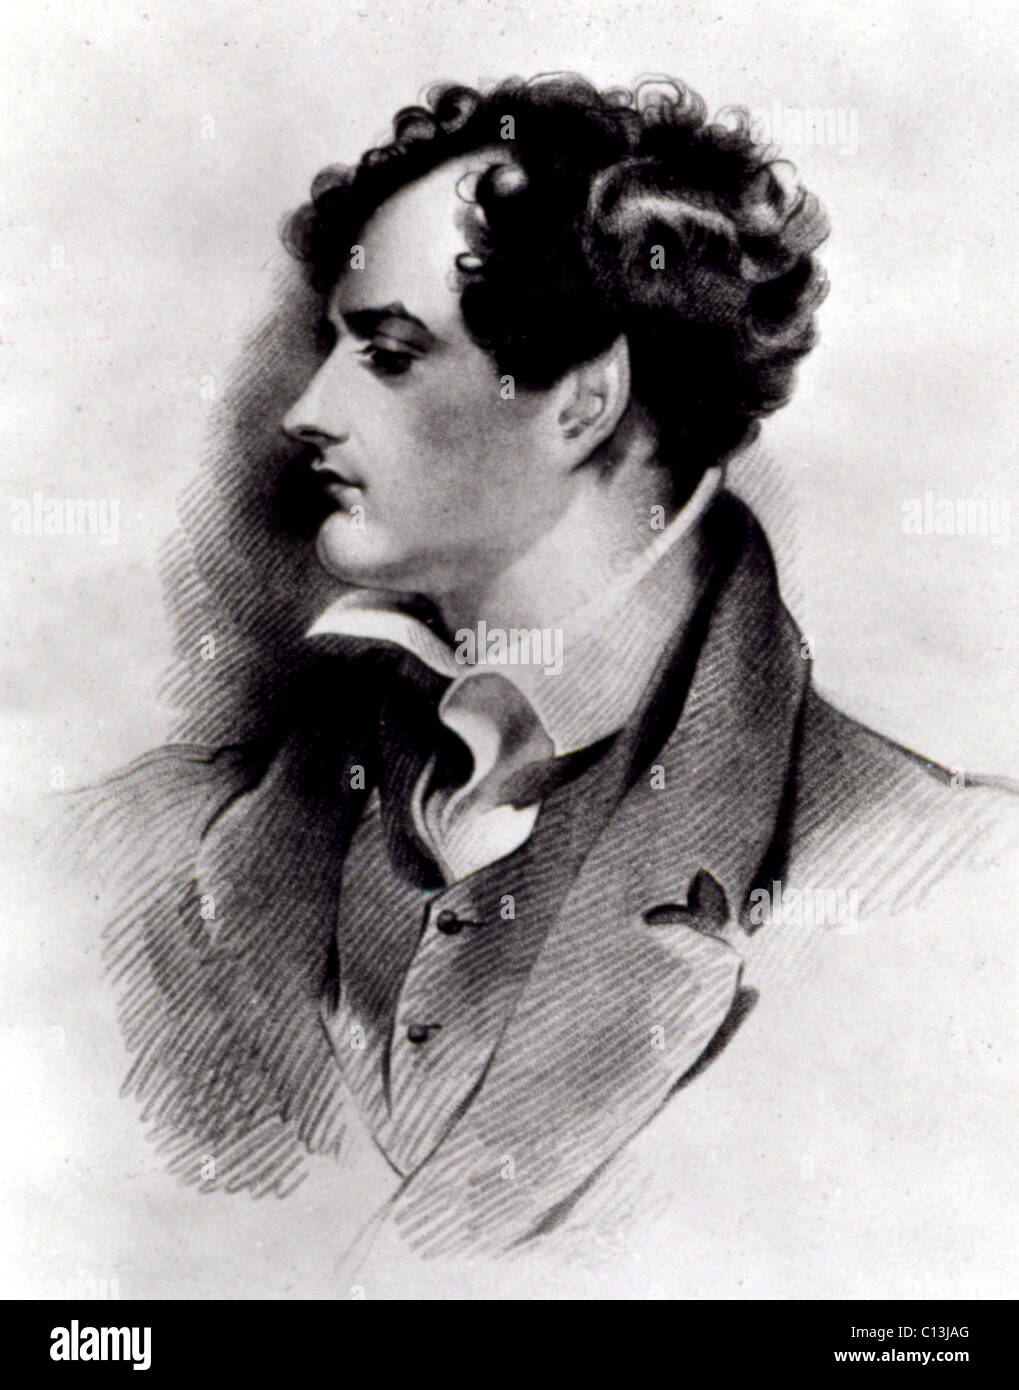 Lord Byron 1800's - Stock Image